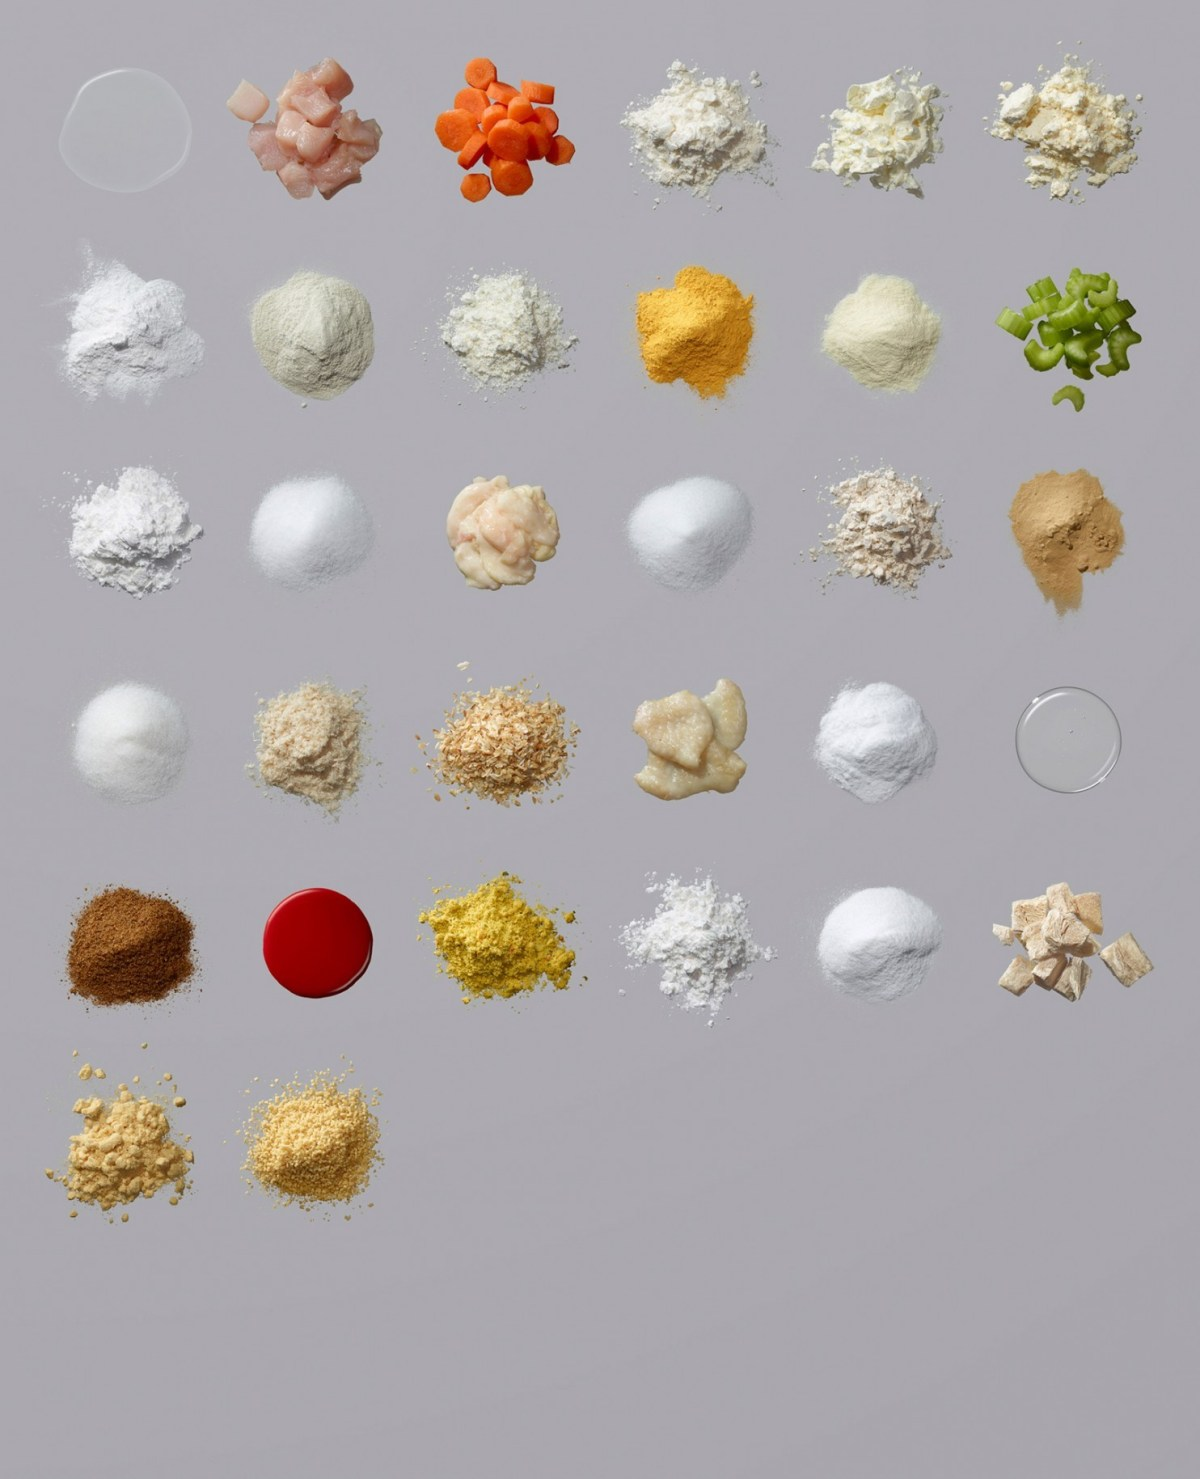 Campbell's Soup Deconstructed